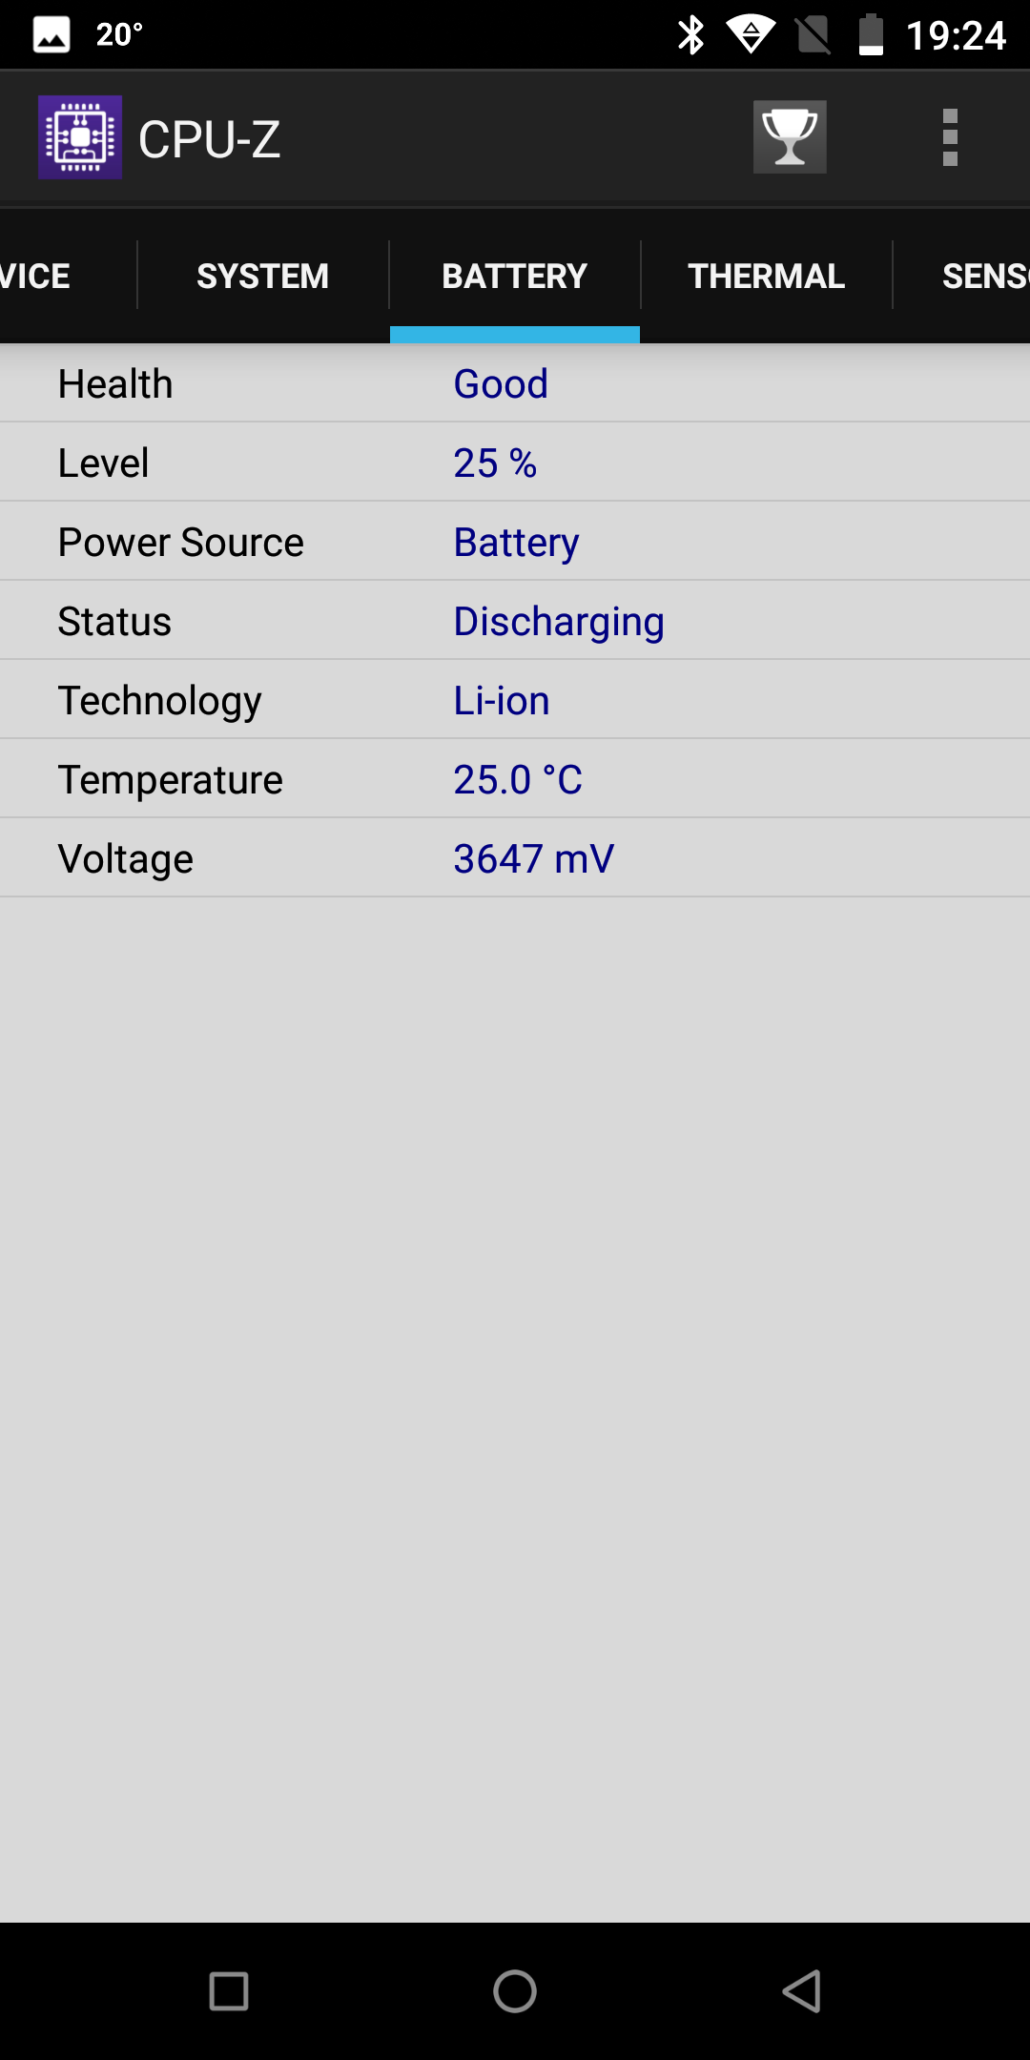 oukitel-k7-phone-review-02-part-4-cpuz-battery